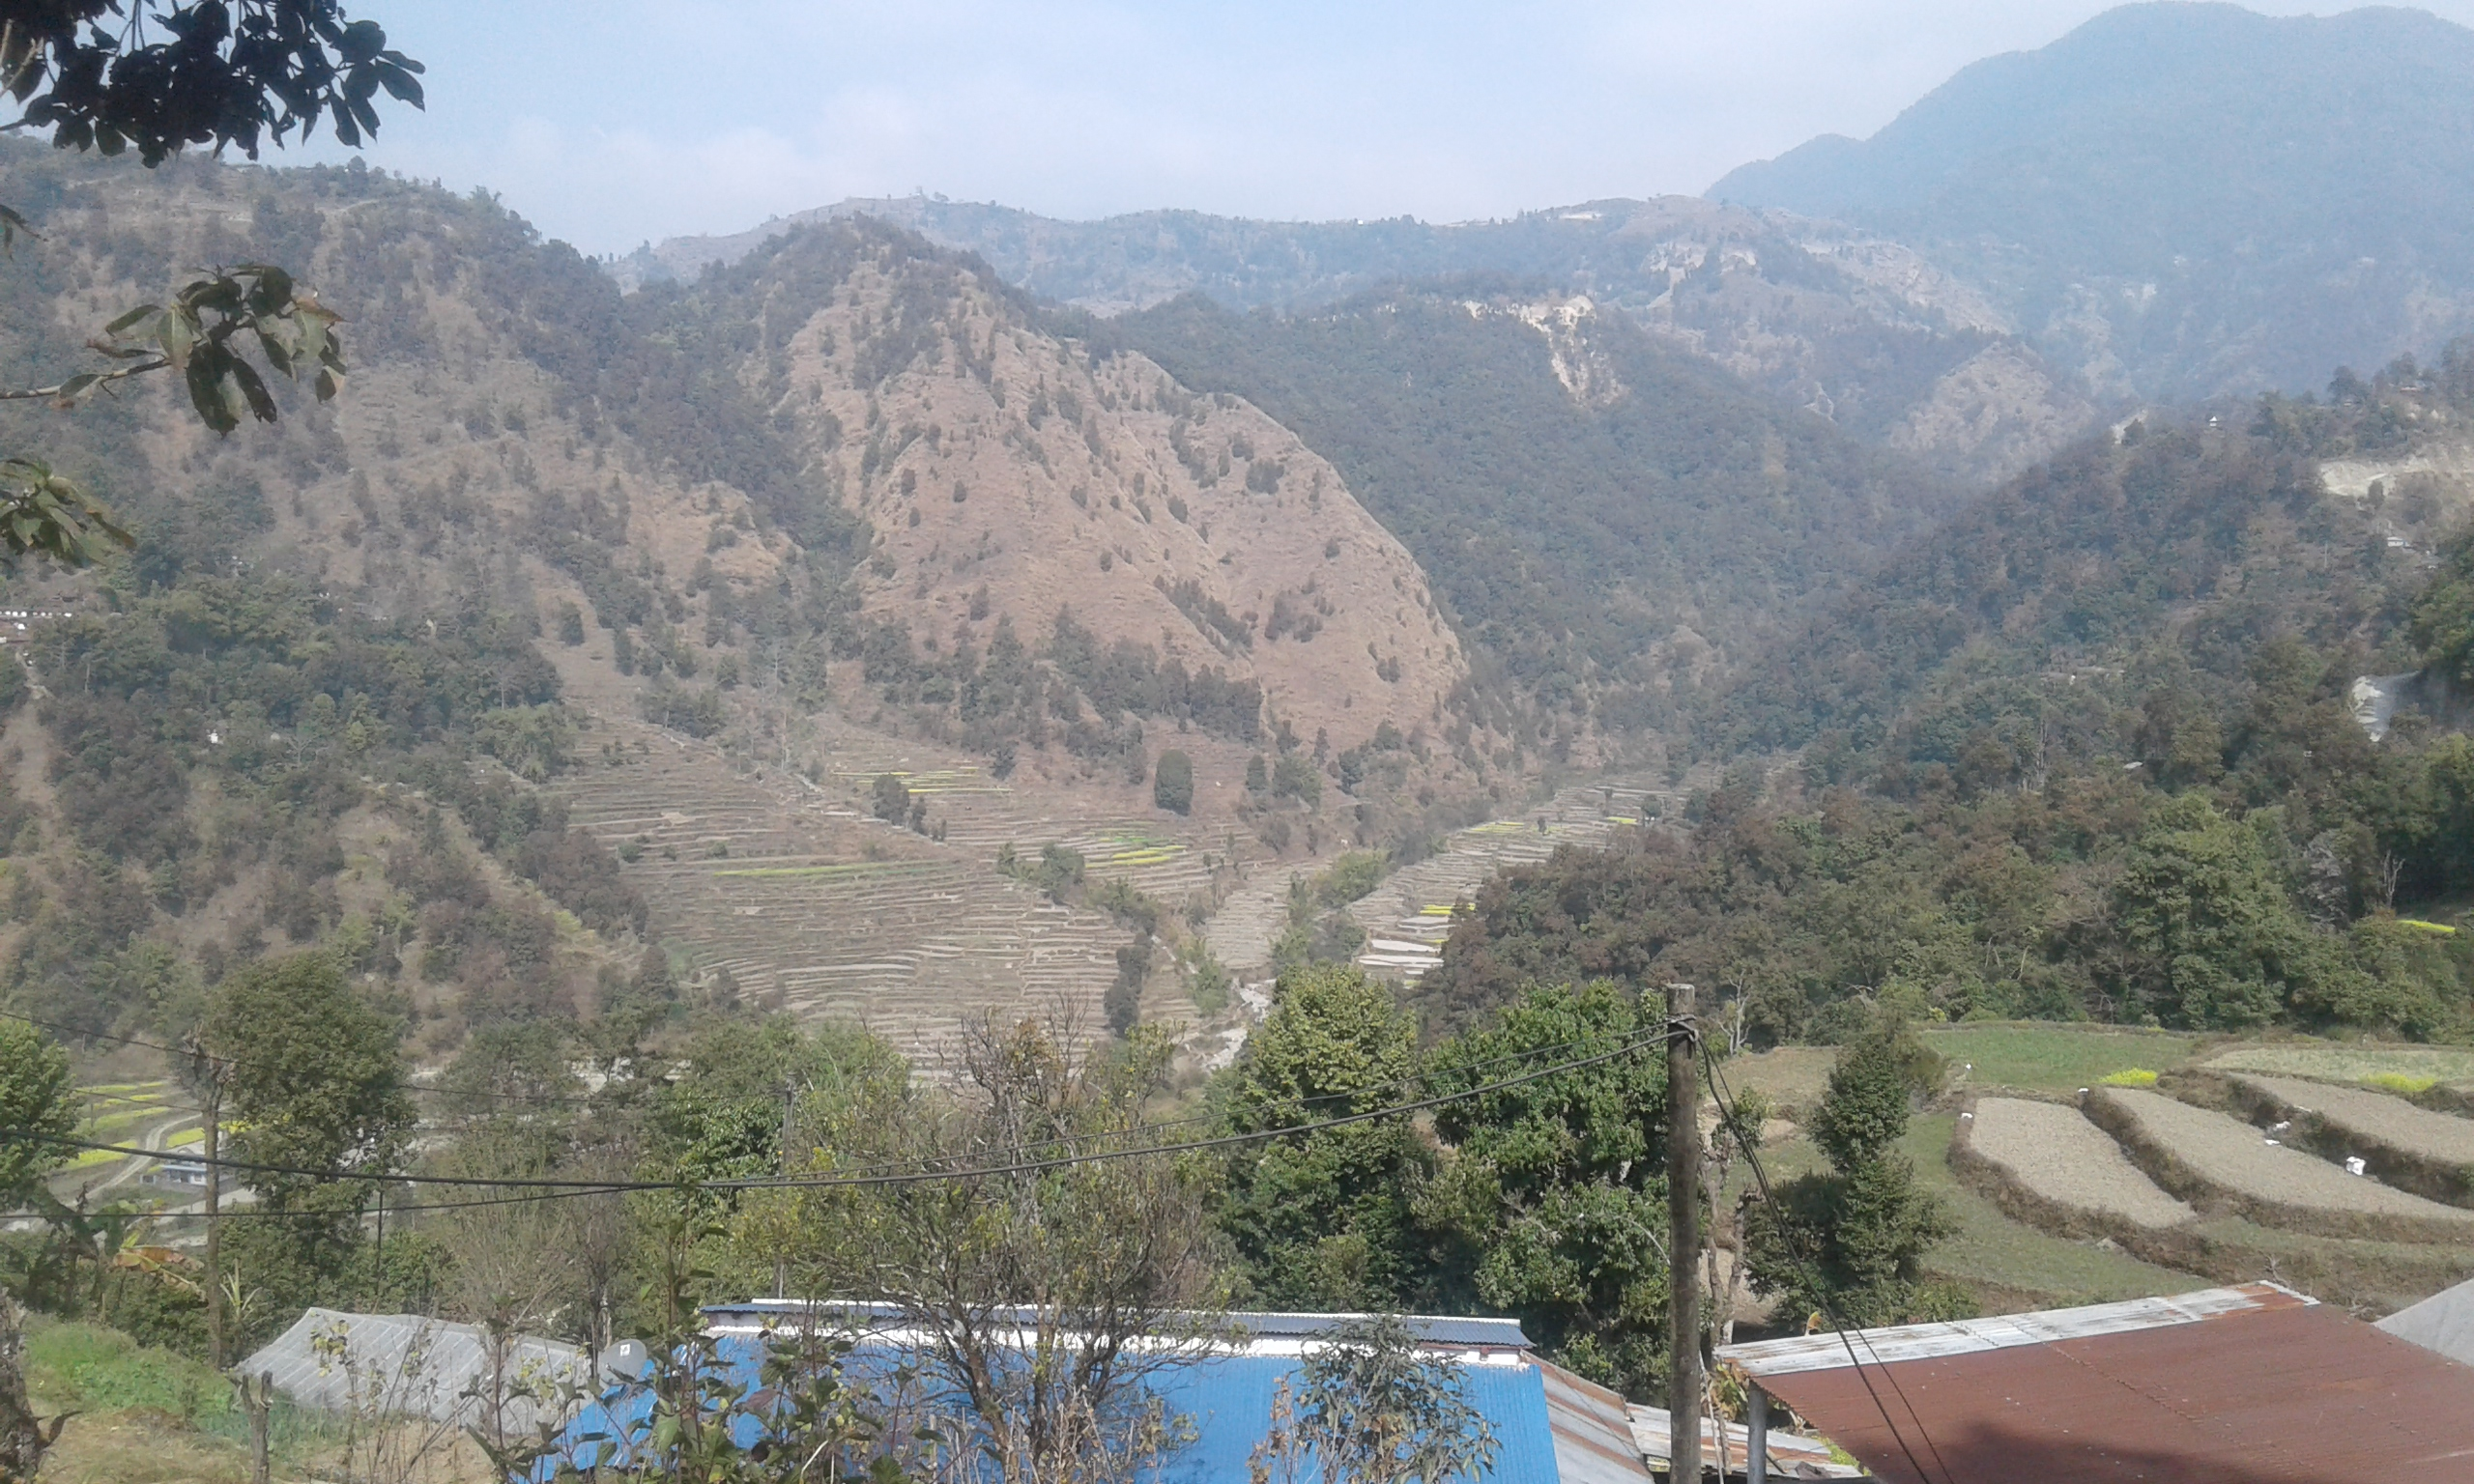 Beautiful place of landscape in Nepal